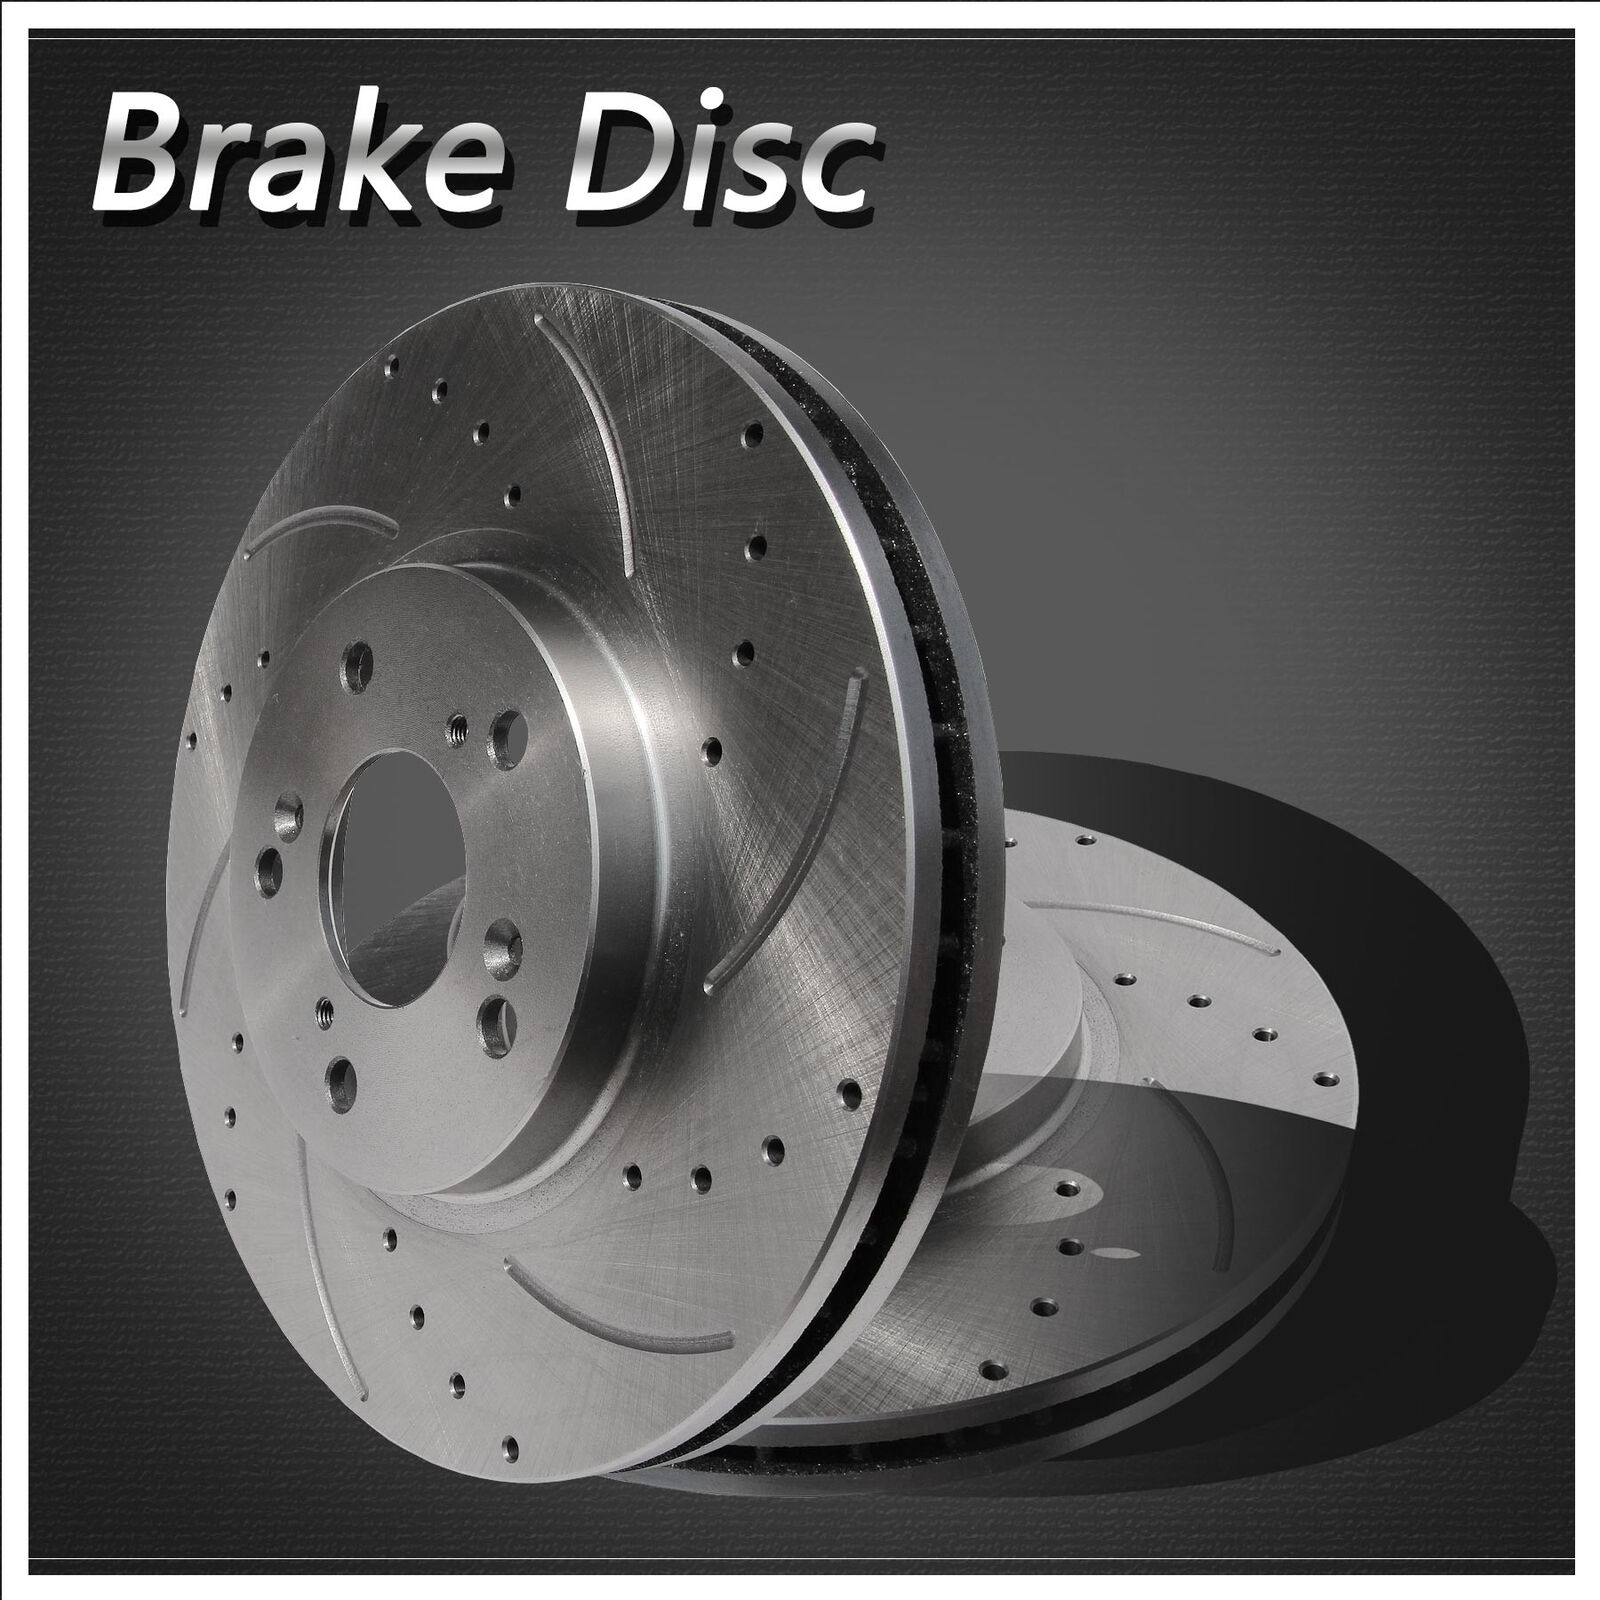 2Qty Brand New Disc Brake Rotors Front Left & Right Side